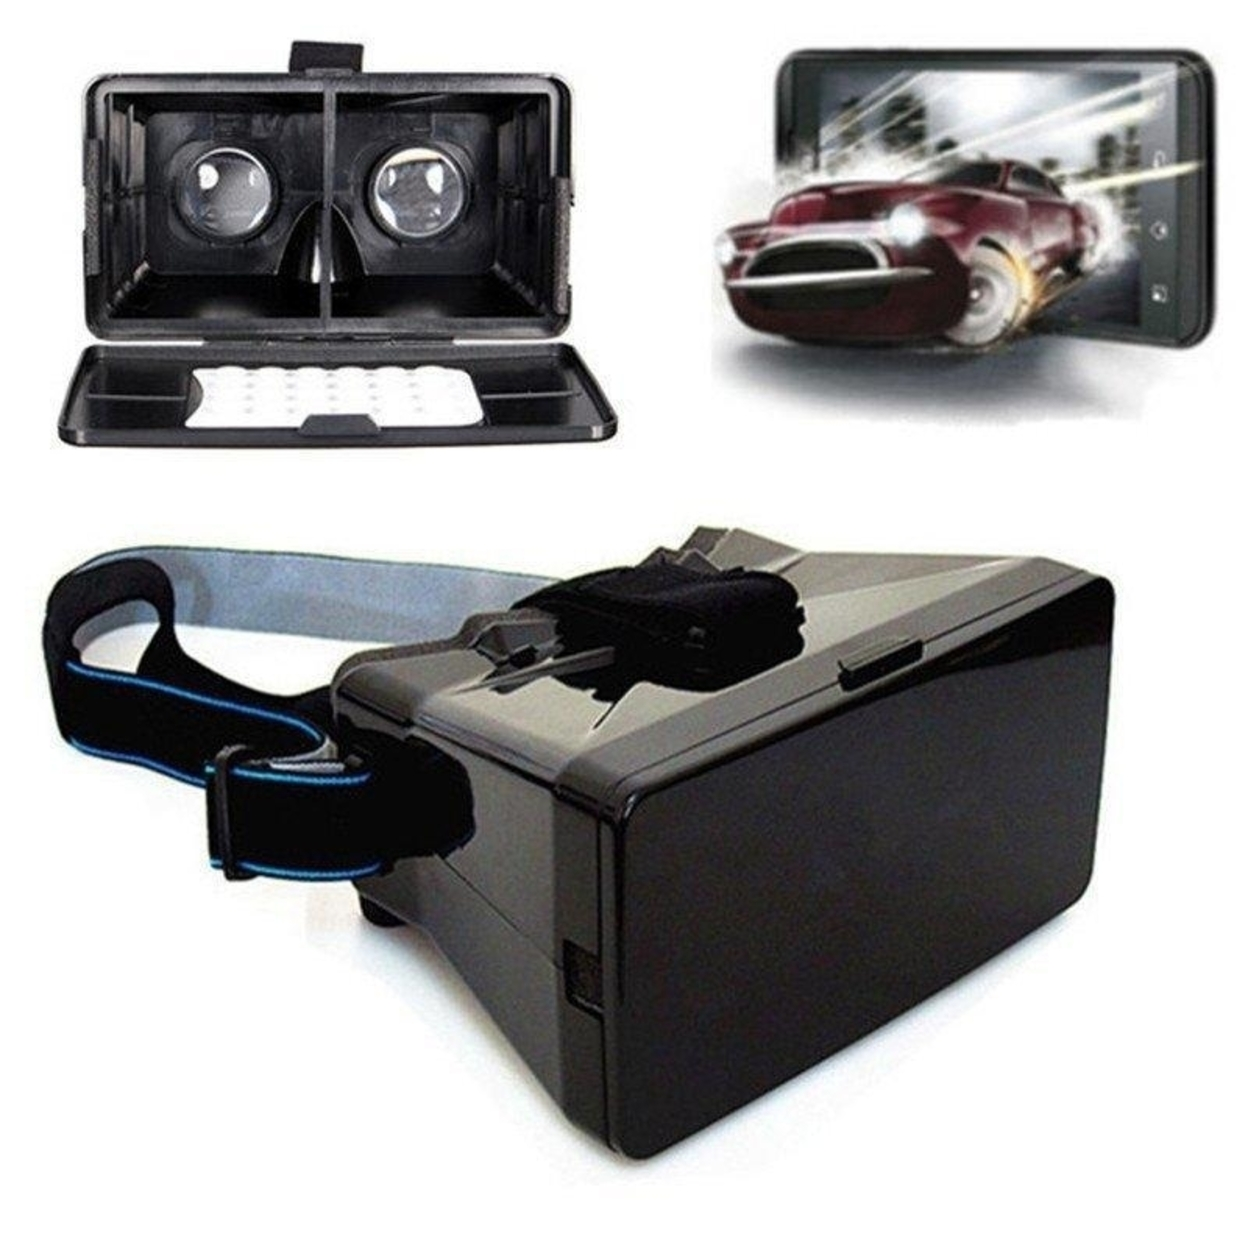 3D Video Glasses Head Mount Plastic Virtual Reality Headset 59a41225c98fc419f9617b85